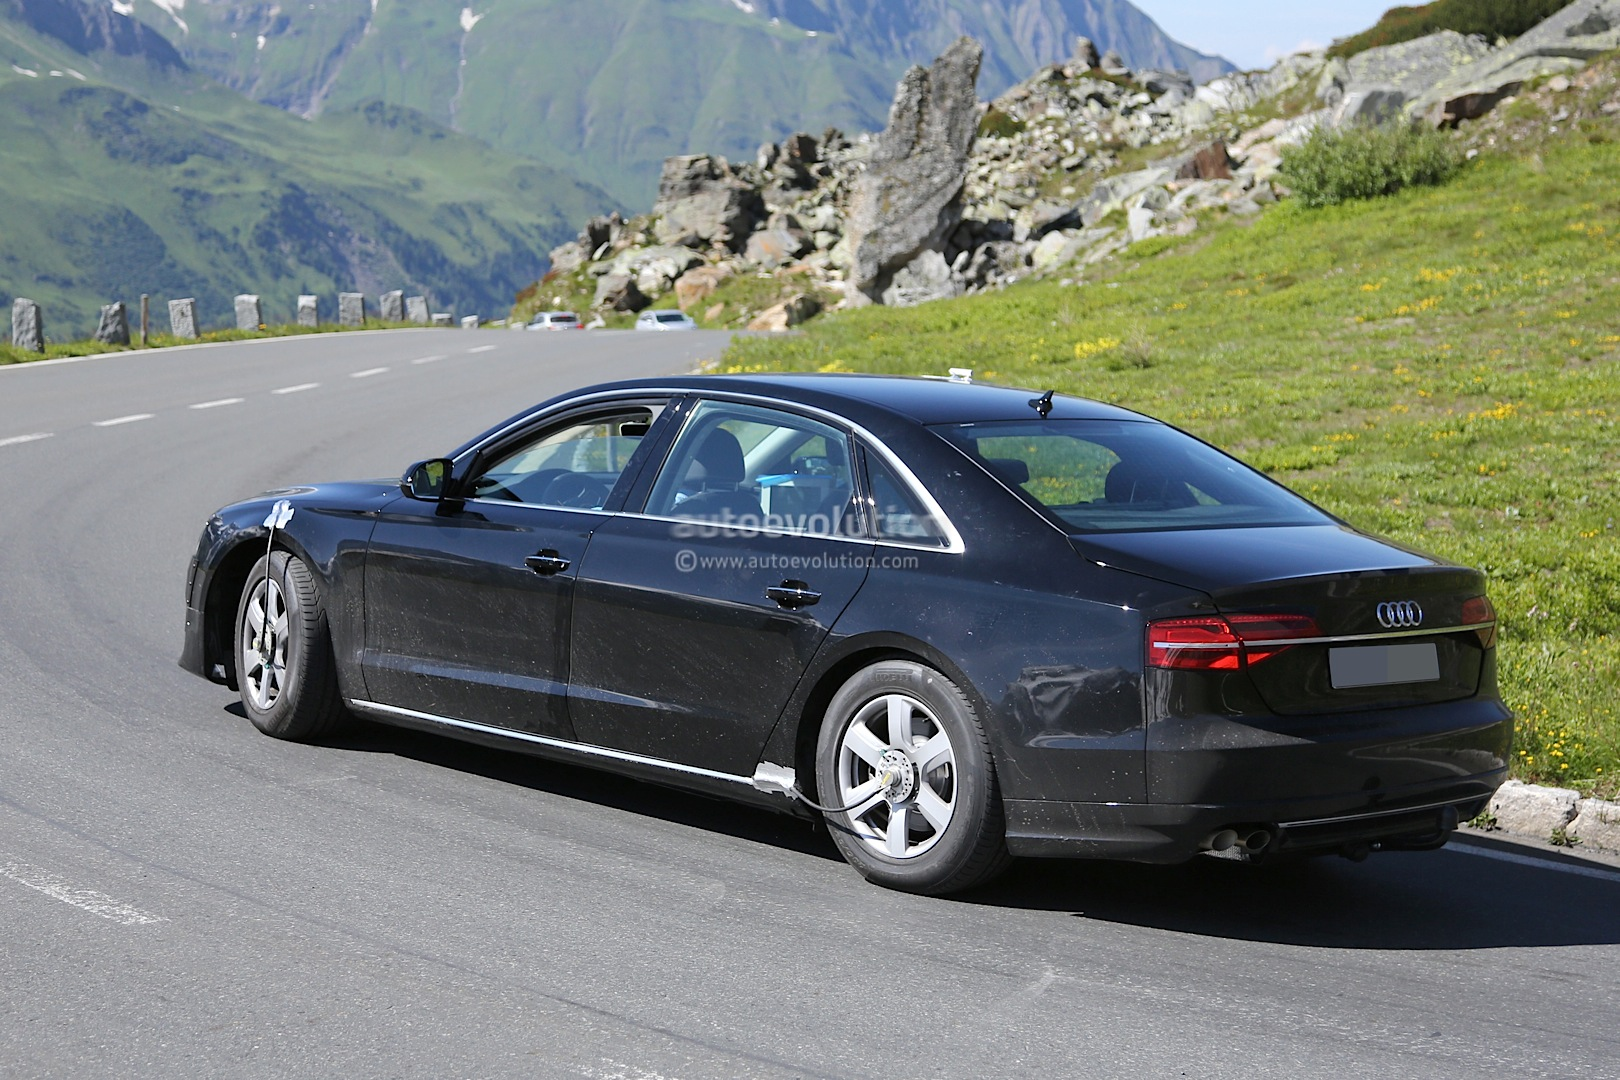 spyshots all new audi a8 for 2016 captured in first. Black Bedroom Furniture Sets. Home Design Ideas